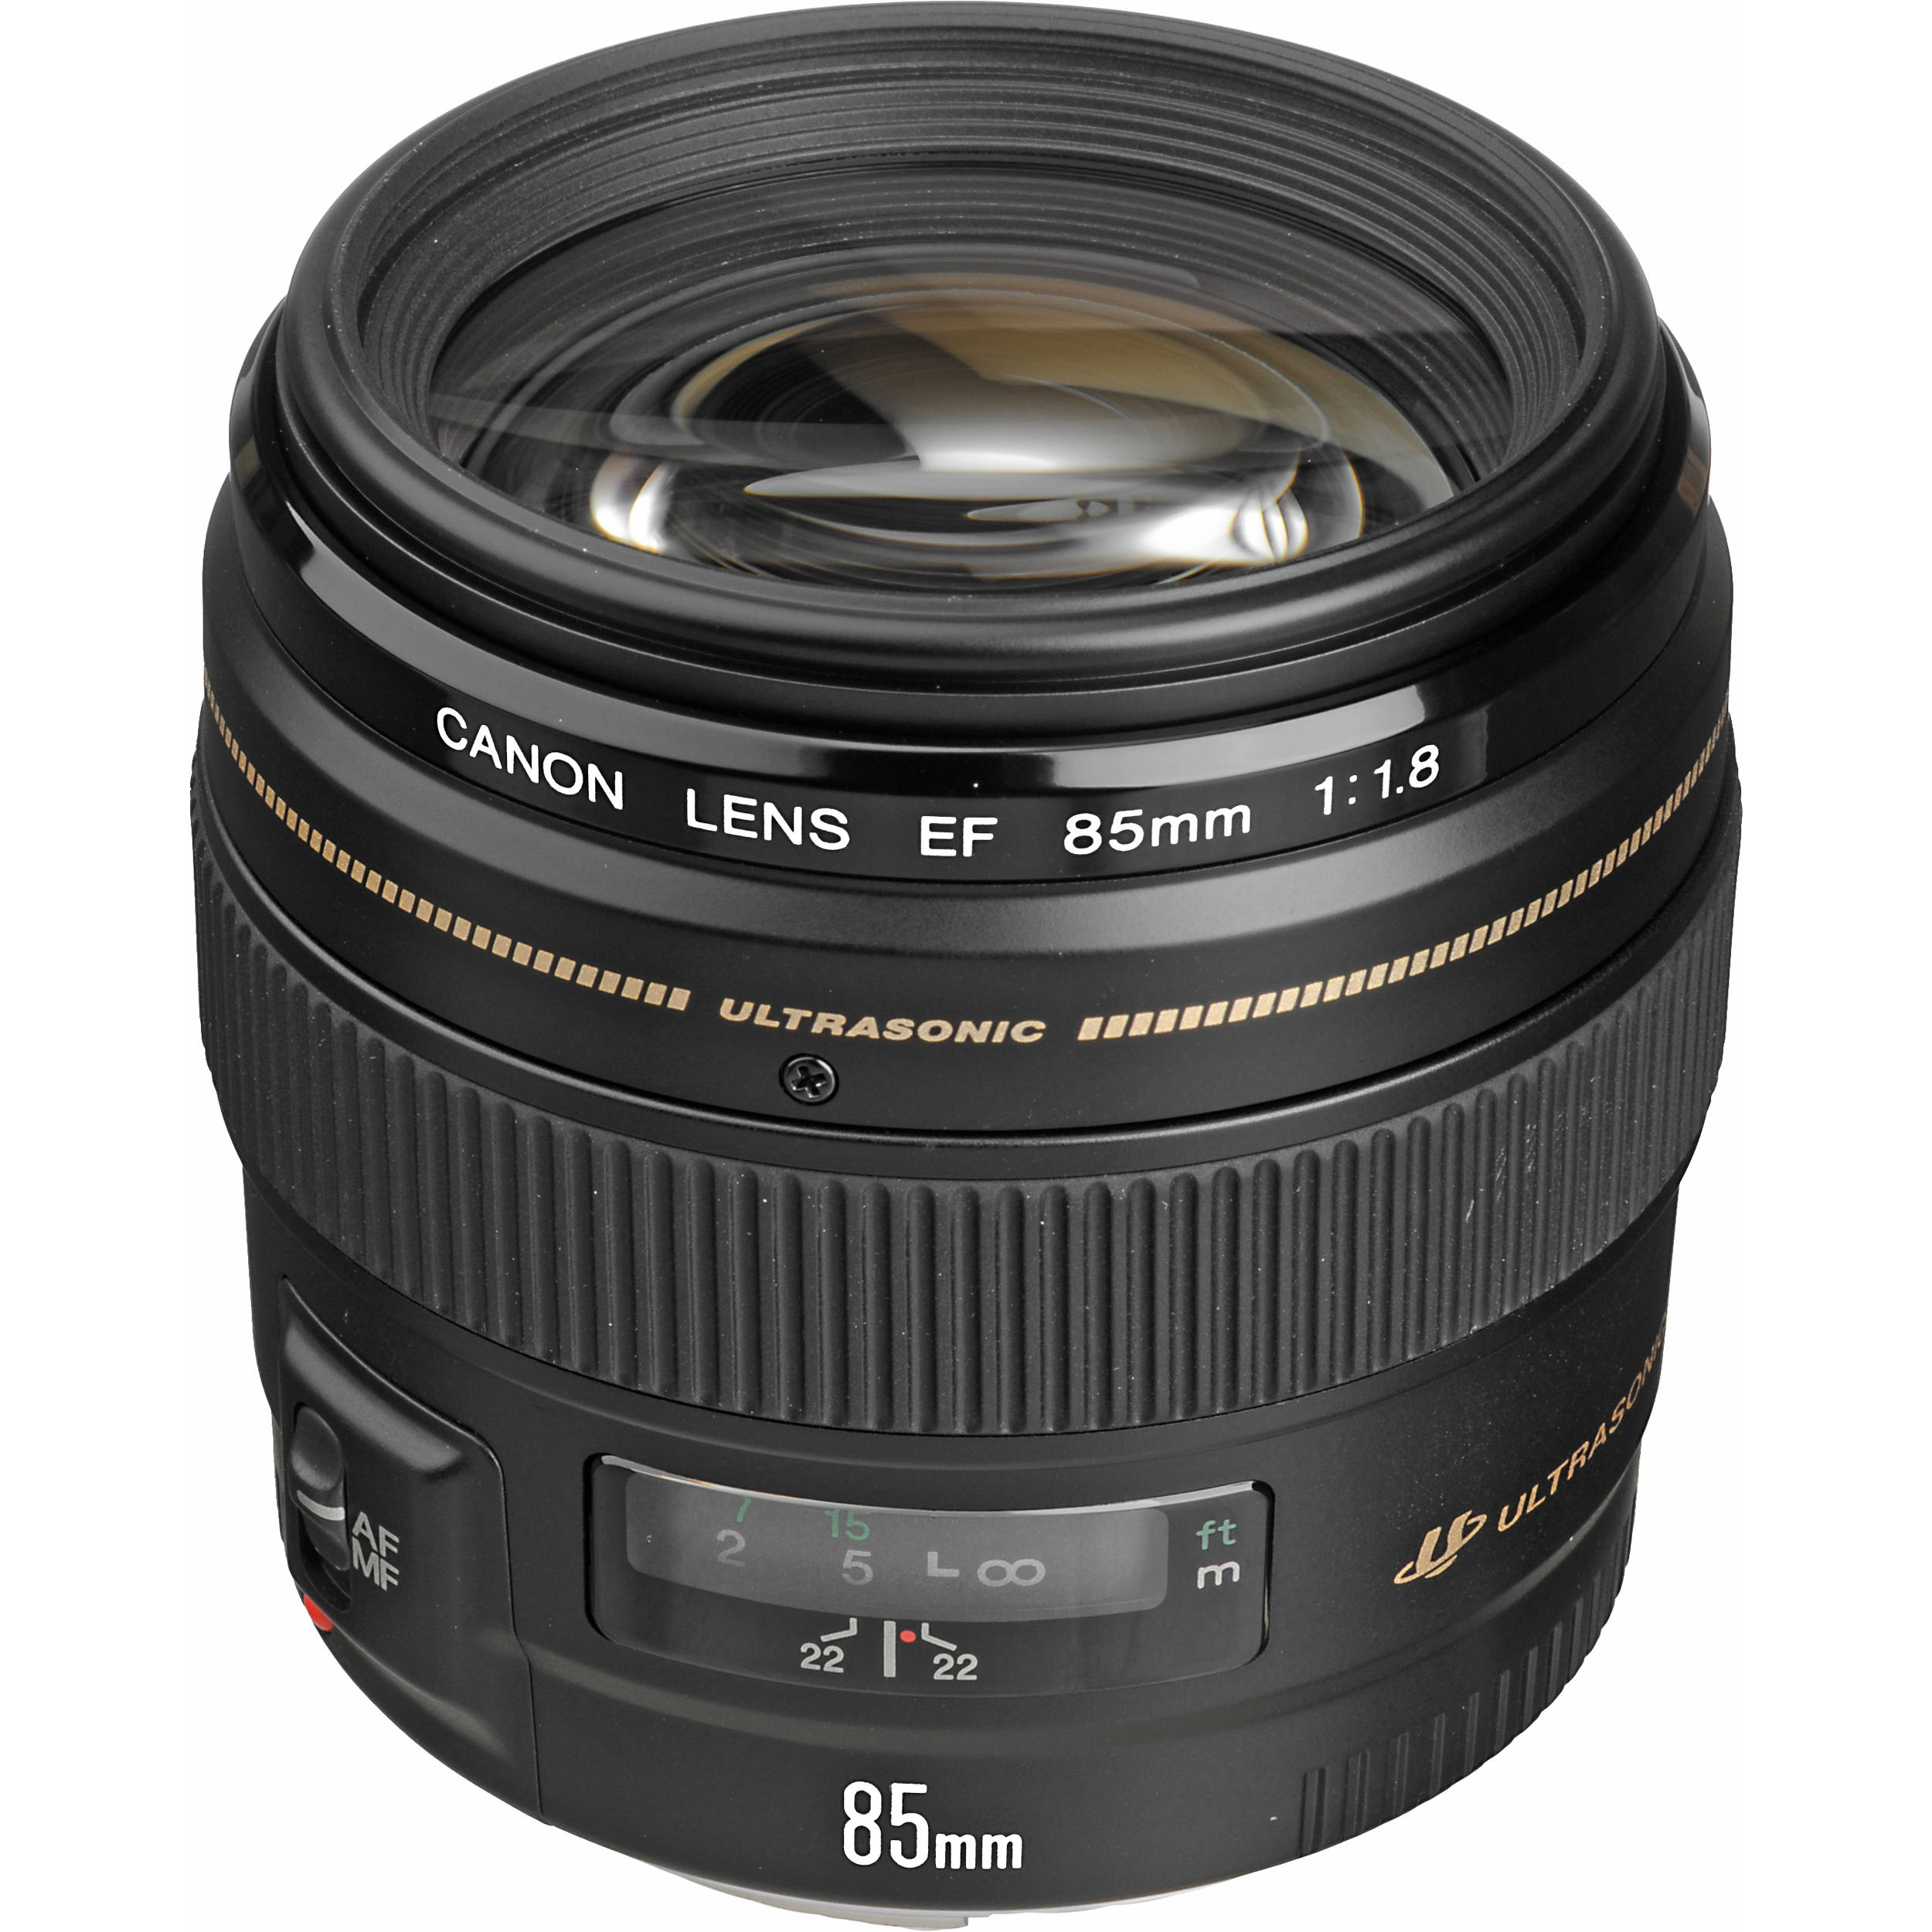 784996d82b2c Canon 85mm f1.8 | B&H Photo Video